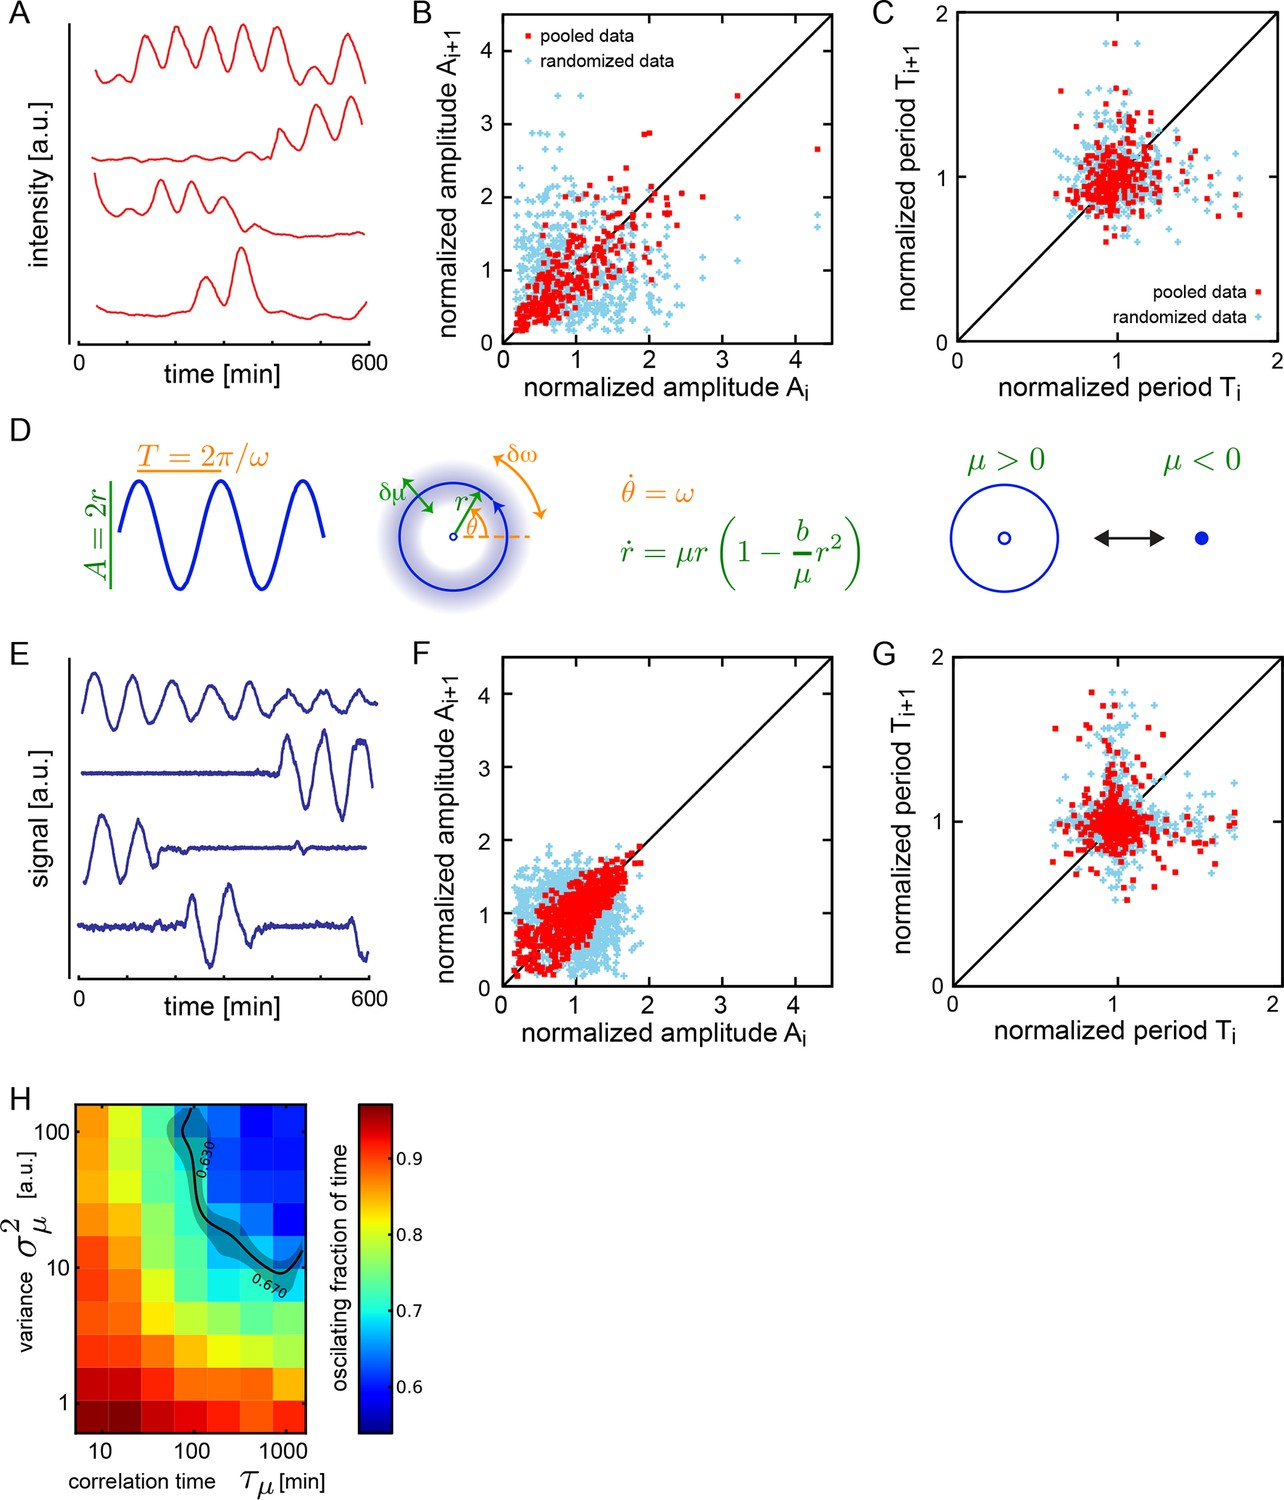 Persistence Period And Precision Of Autonomous Cellular Oscillators From An Oscillator Circuit Electrical Engineering Stack Exchange Dispersed Low Density Cells Show A Variety Behaviors Compatible With Slow Amplitude Fluctuations